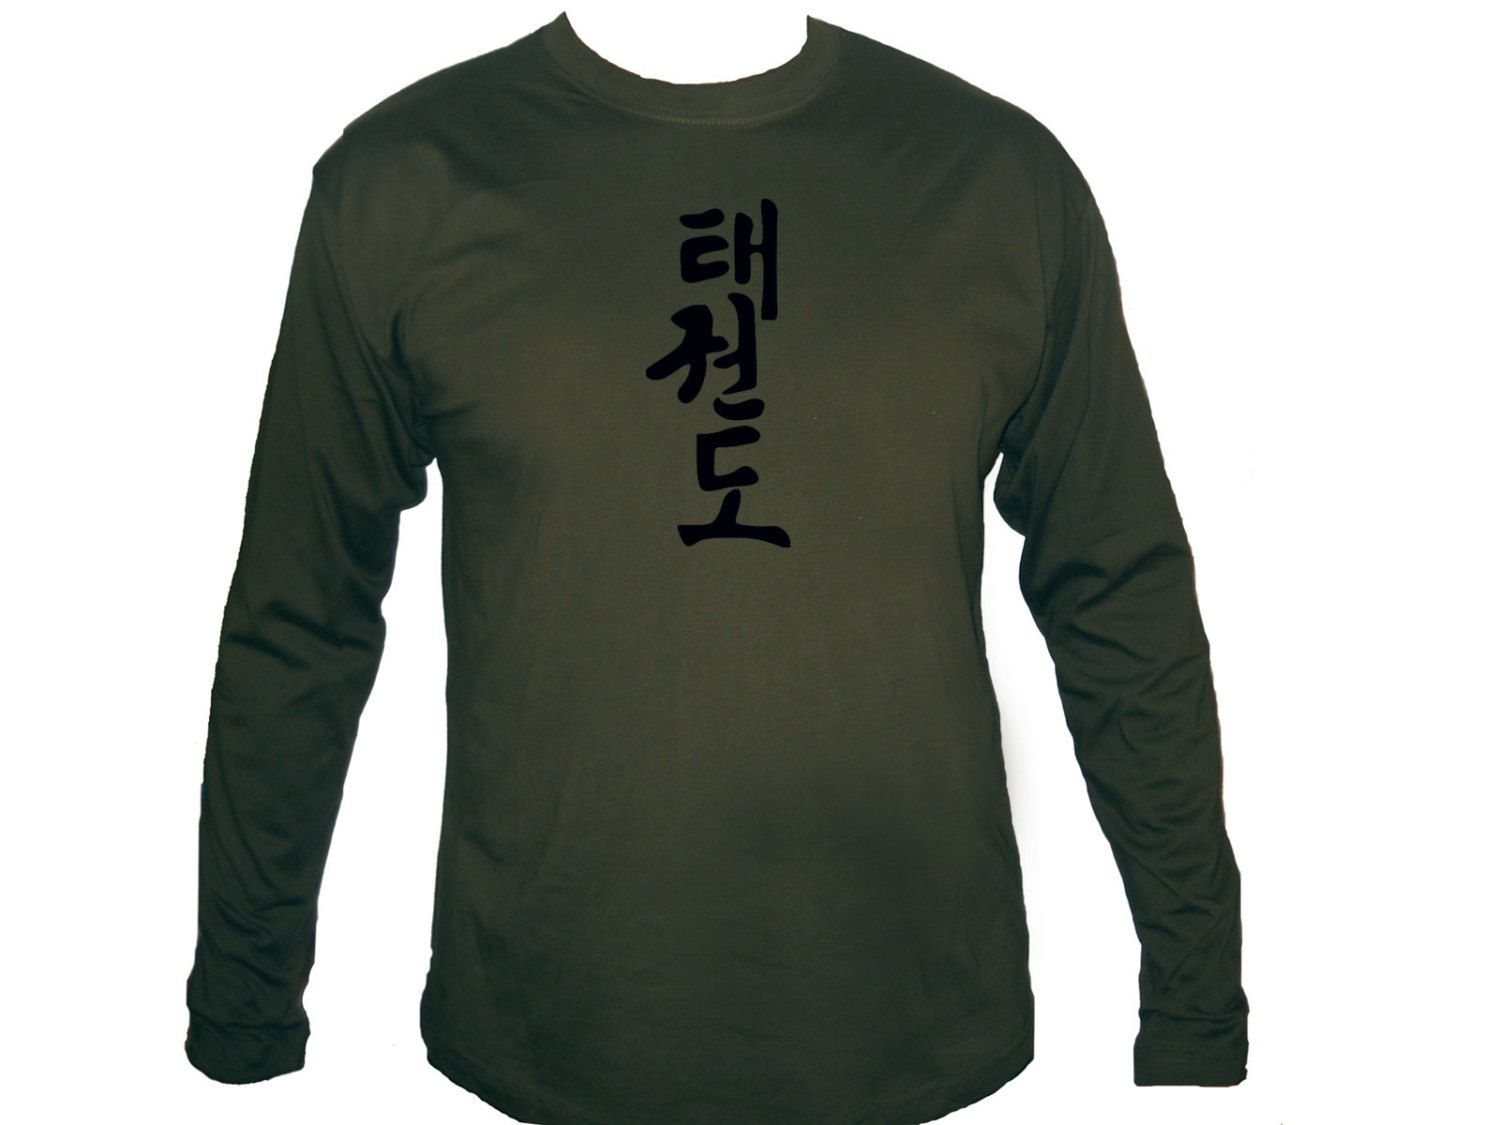 Customize army t shirts